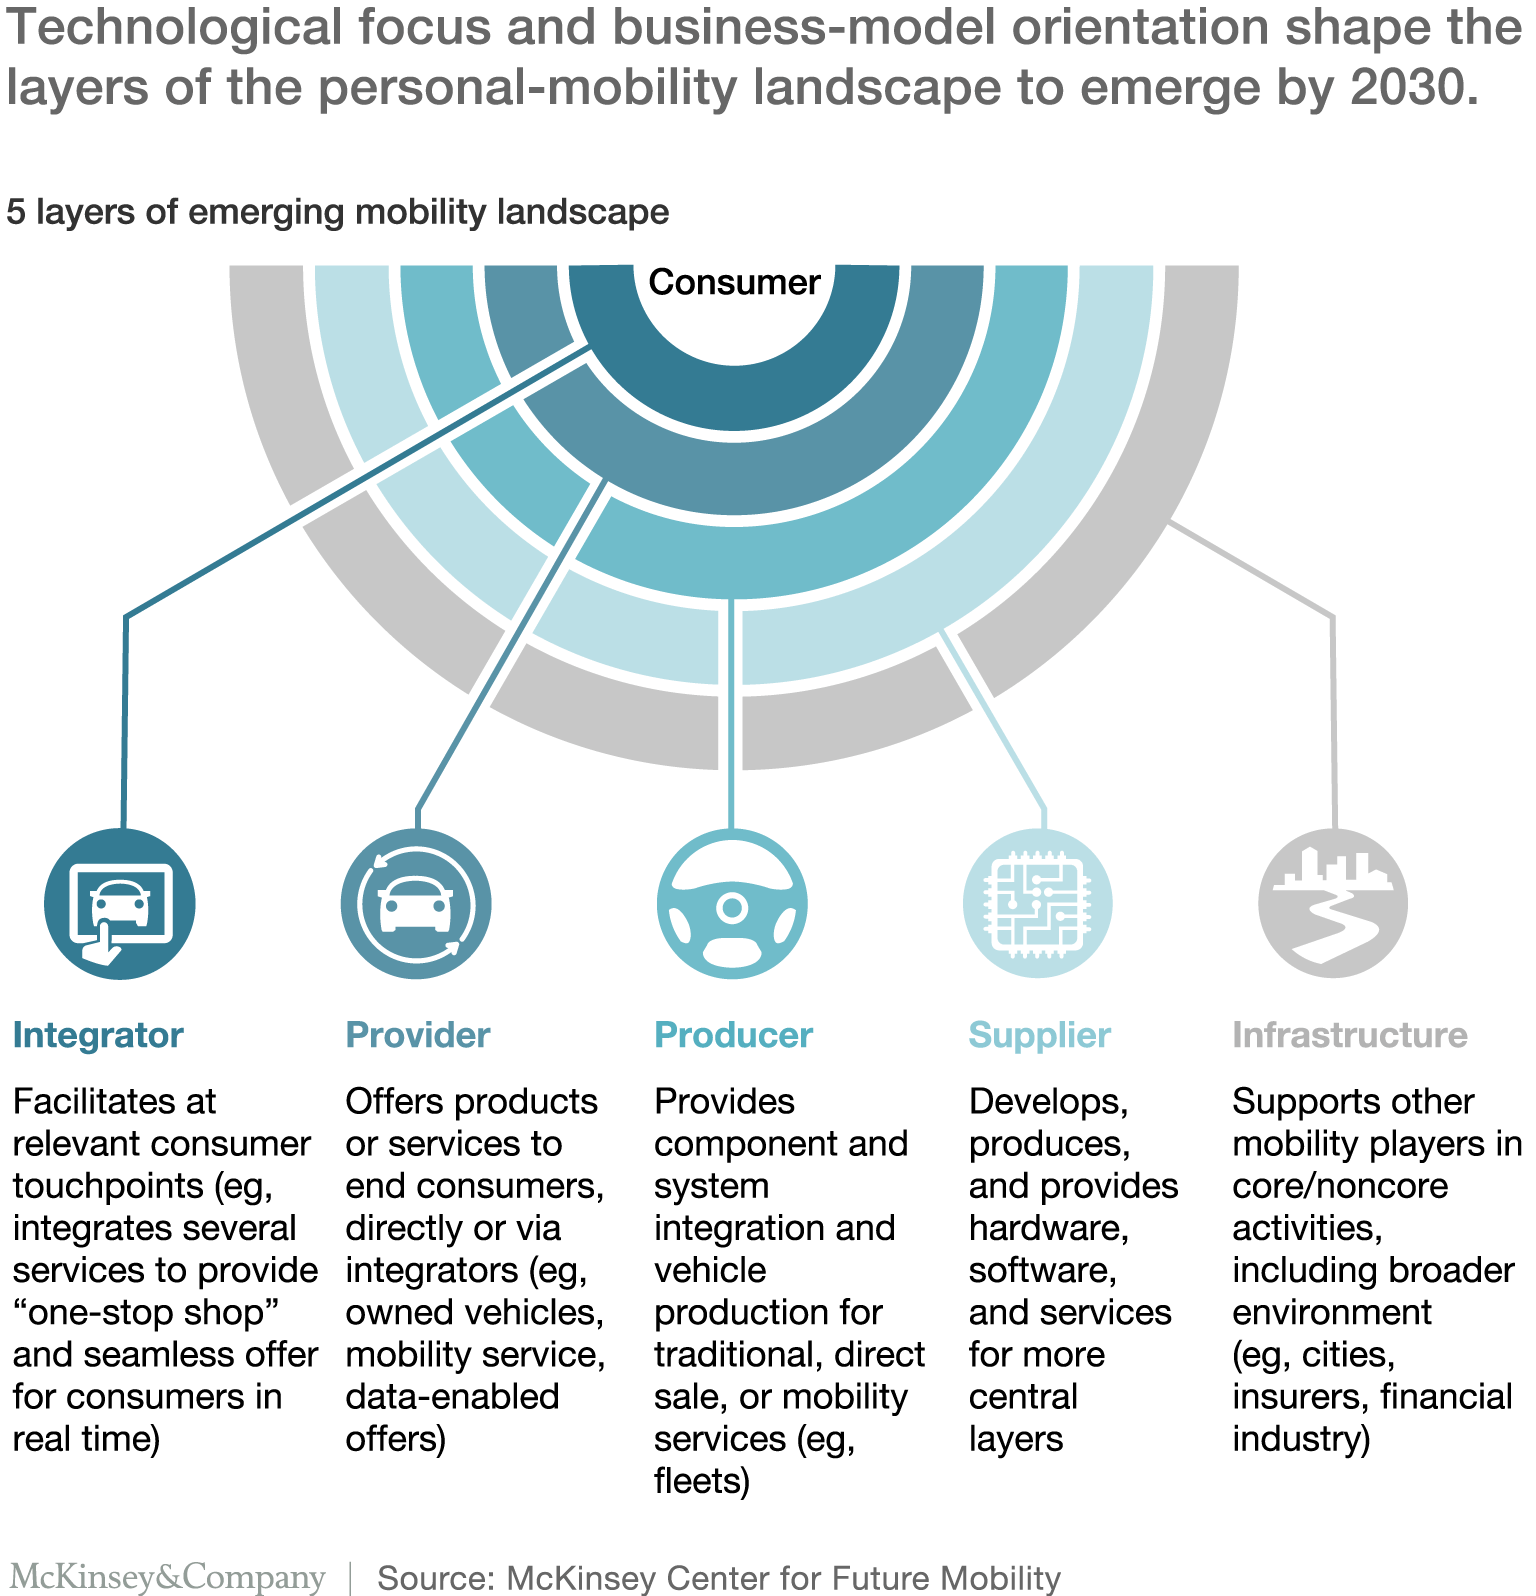 5 layers of emerging mobility landscape, based on technology focus and business model orientation